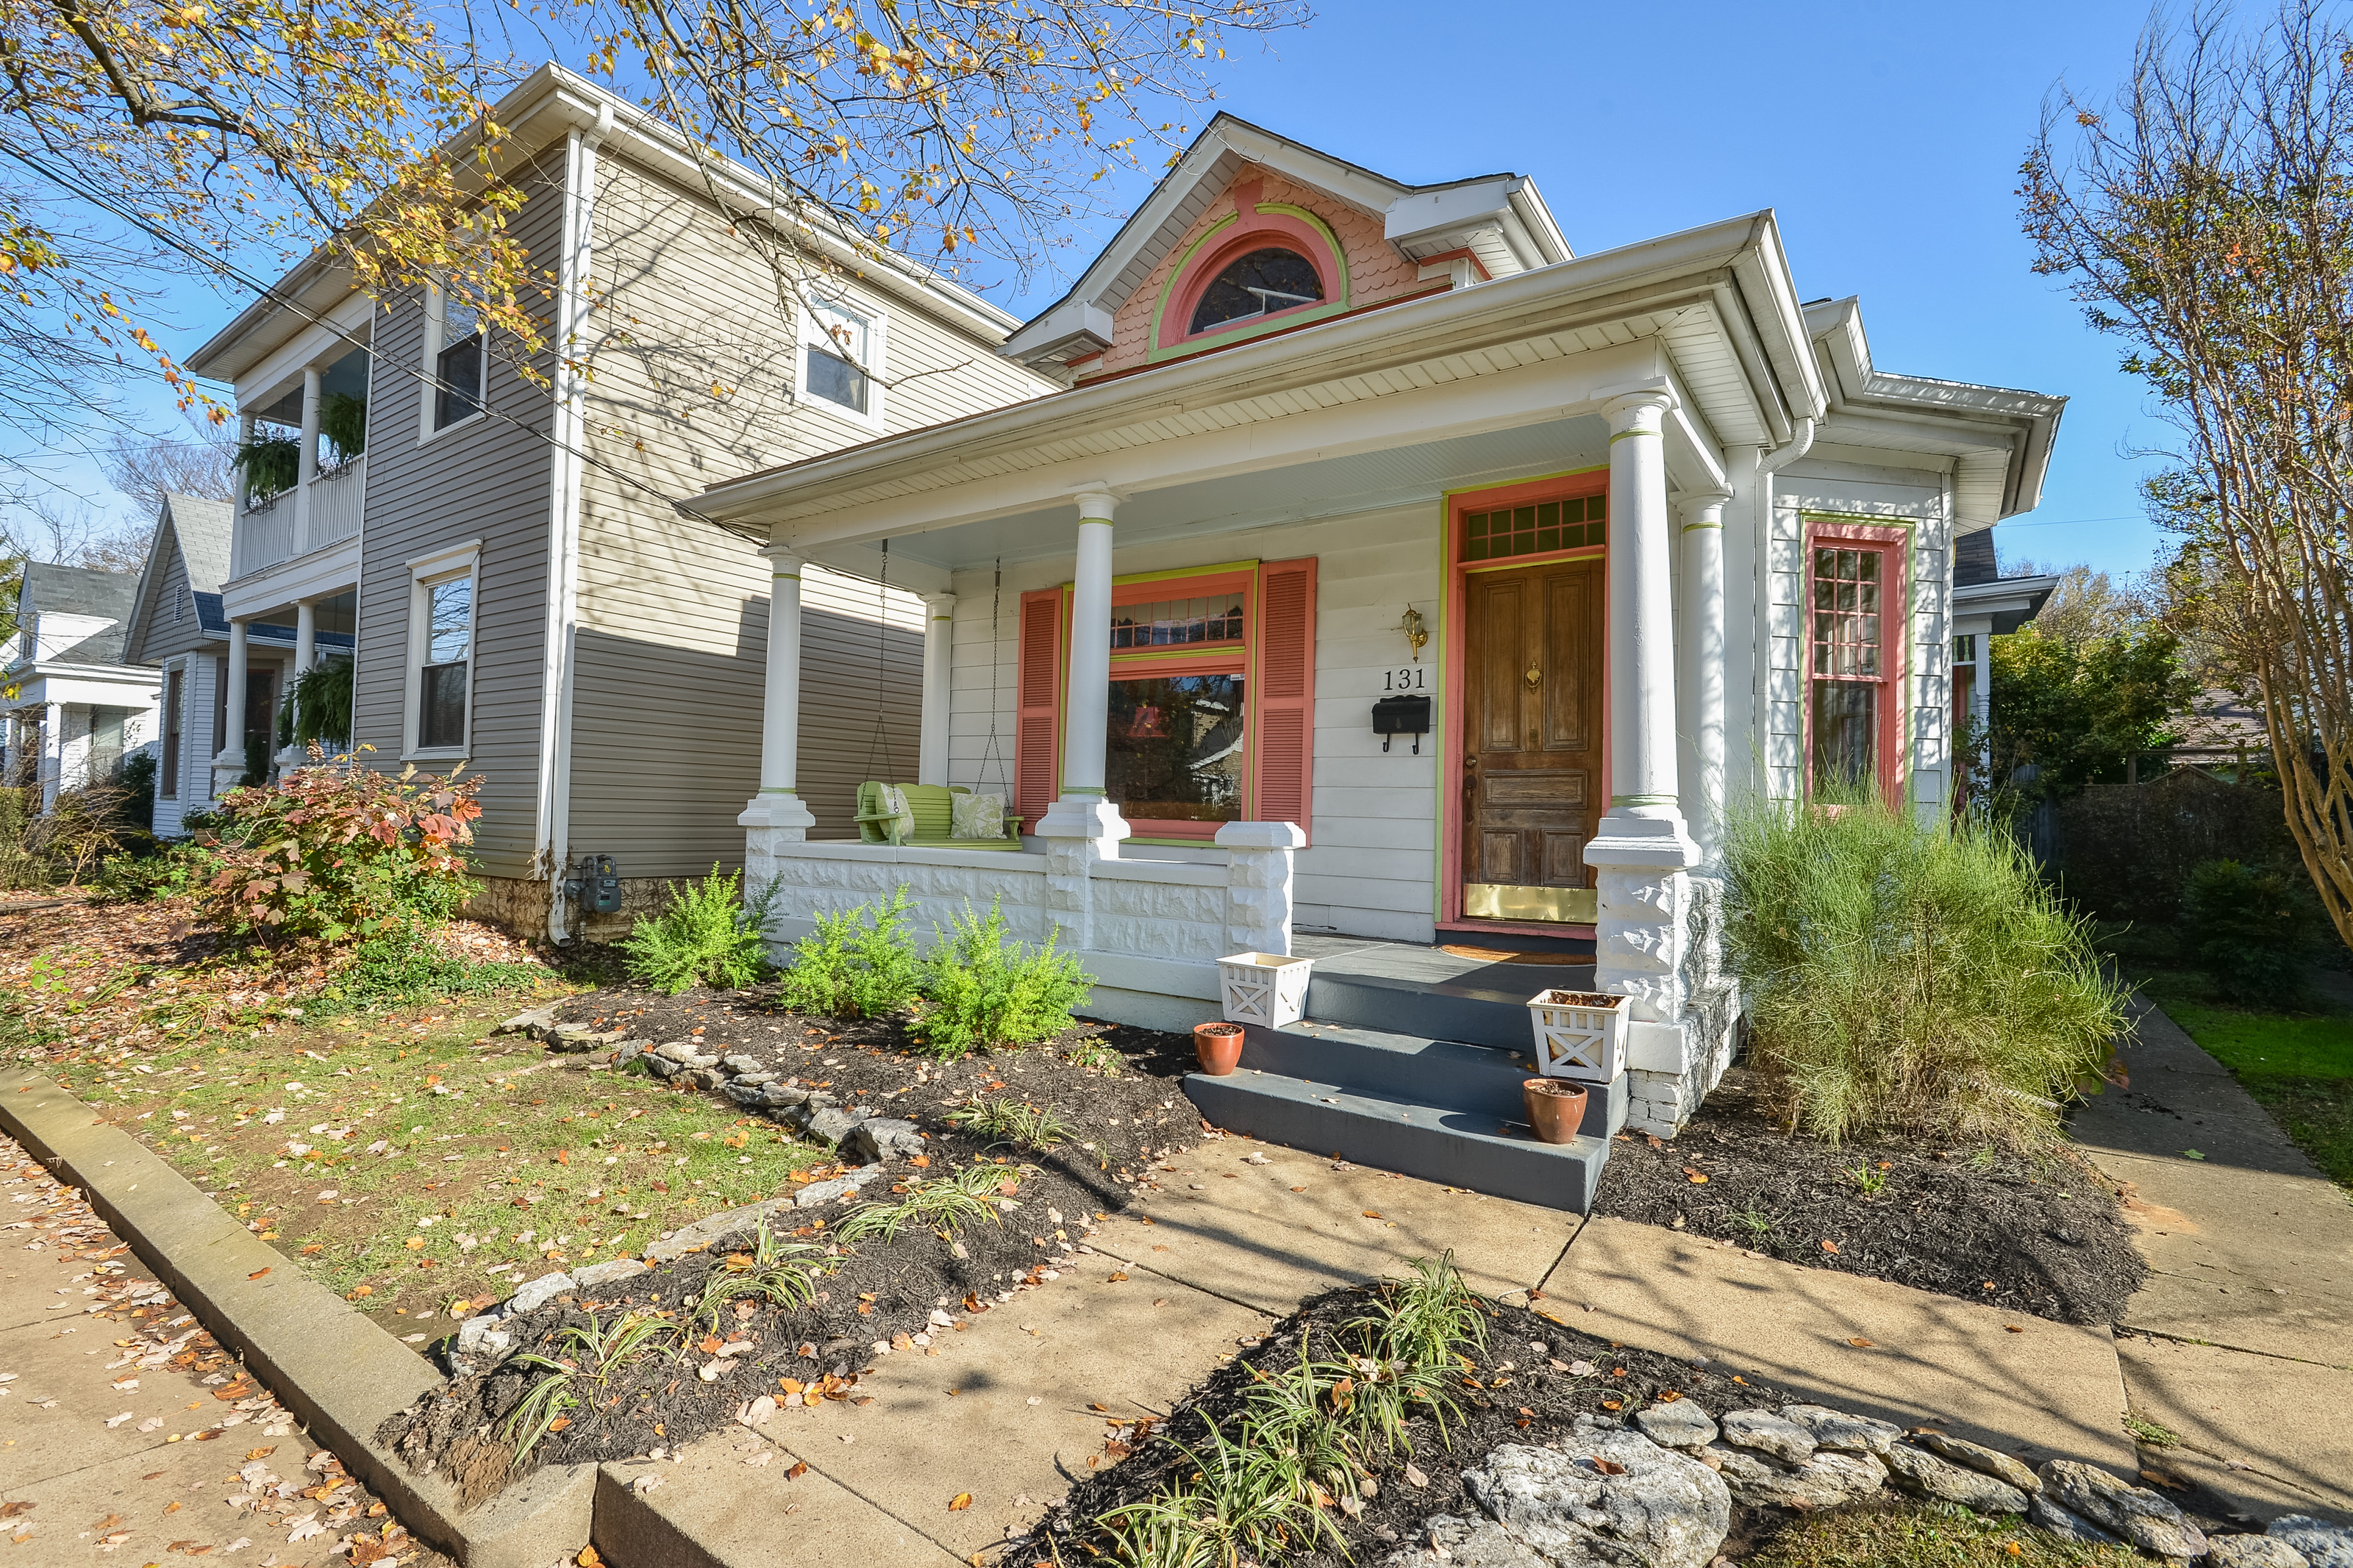 Single Family Home for Sale at 131 S. Bayly Avenue Louisville, Kentucky 40206 United States